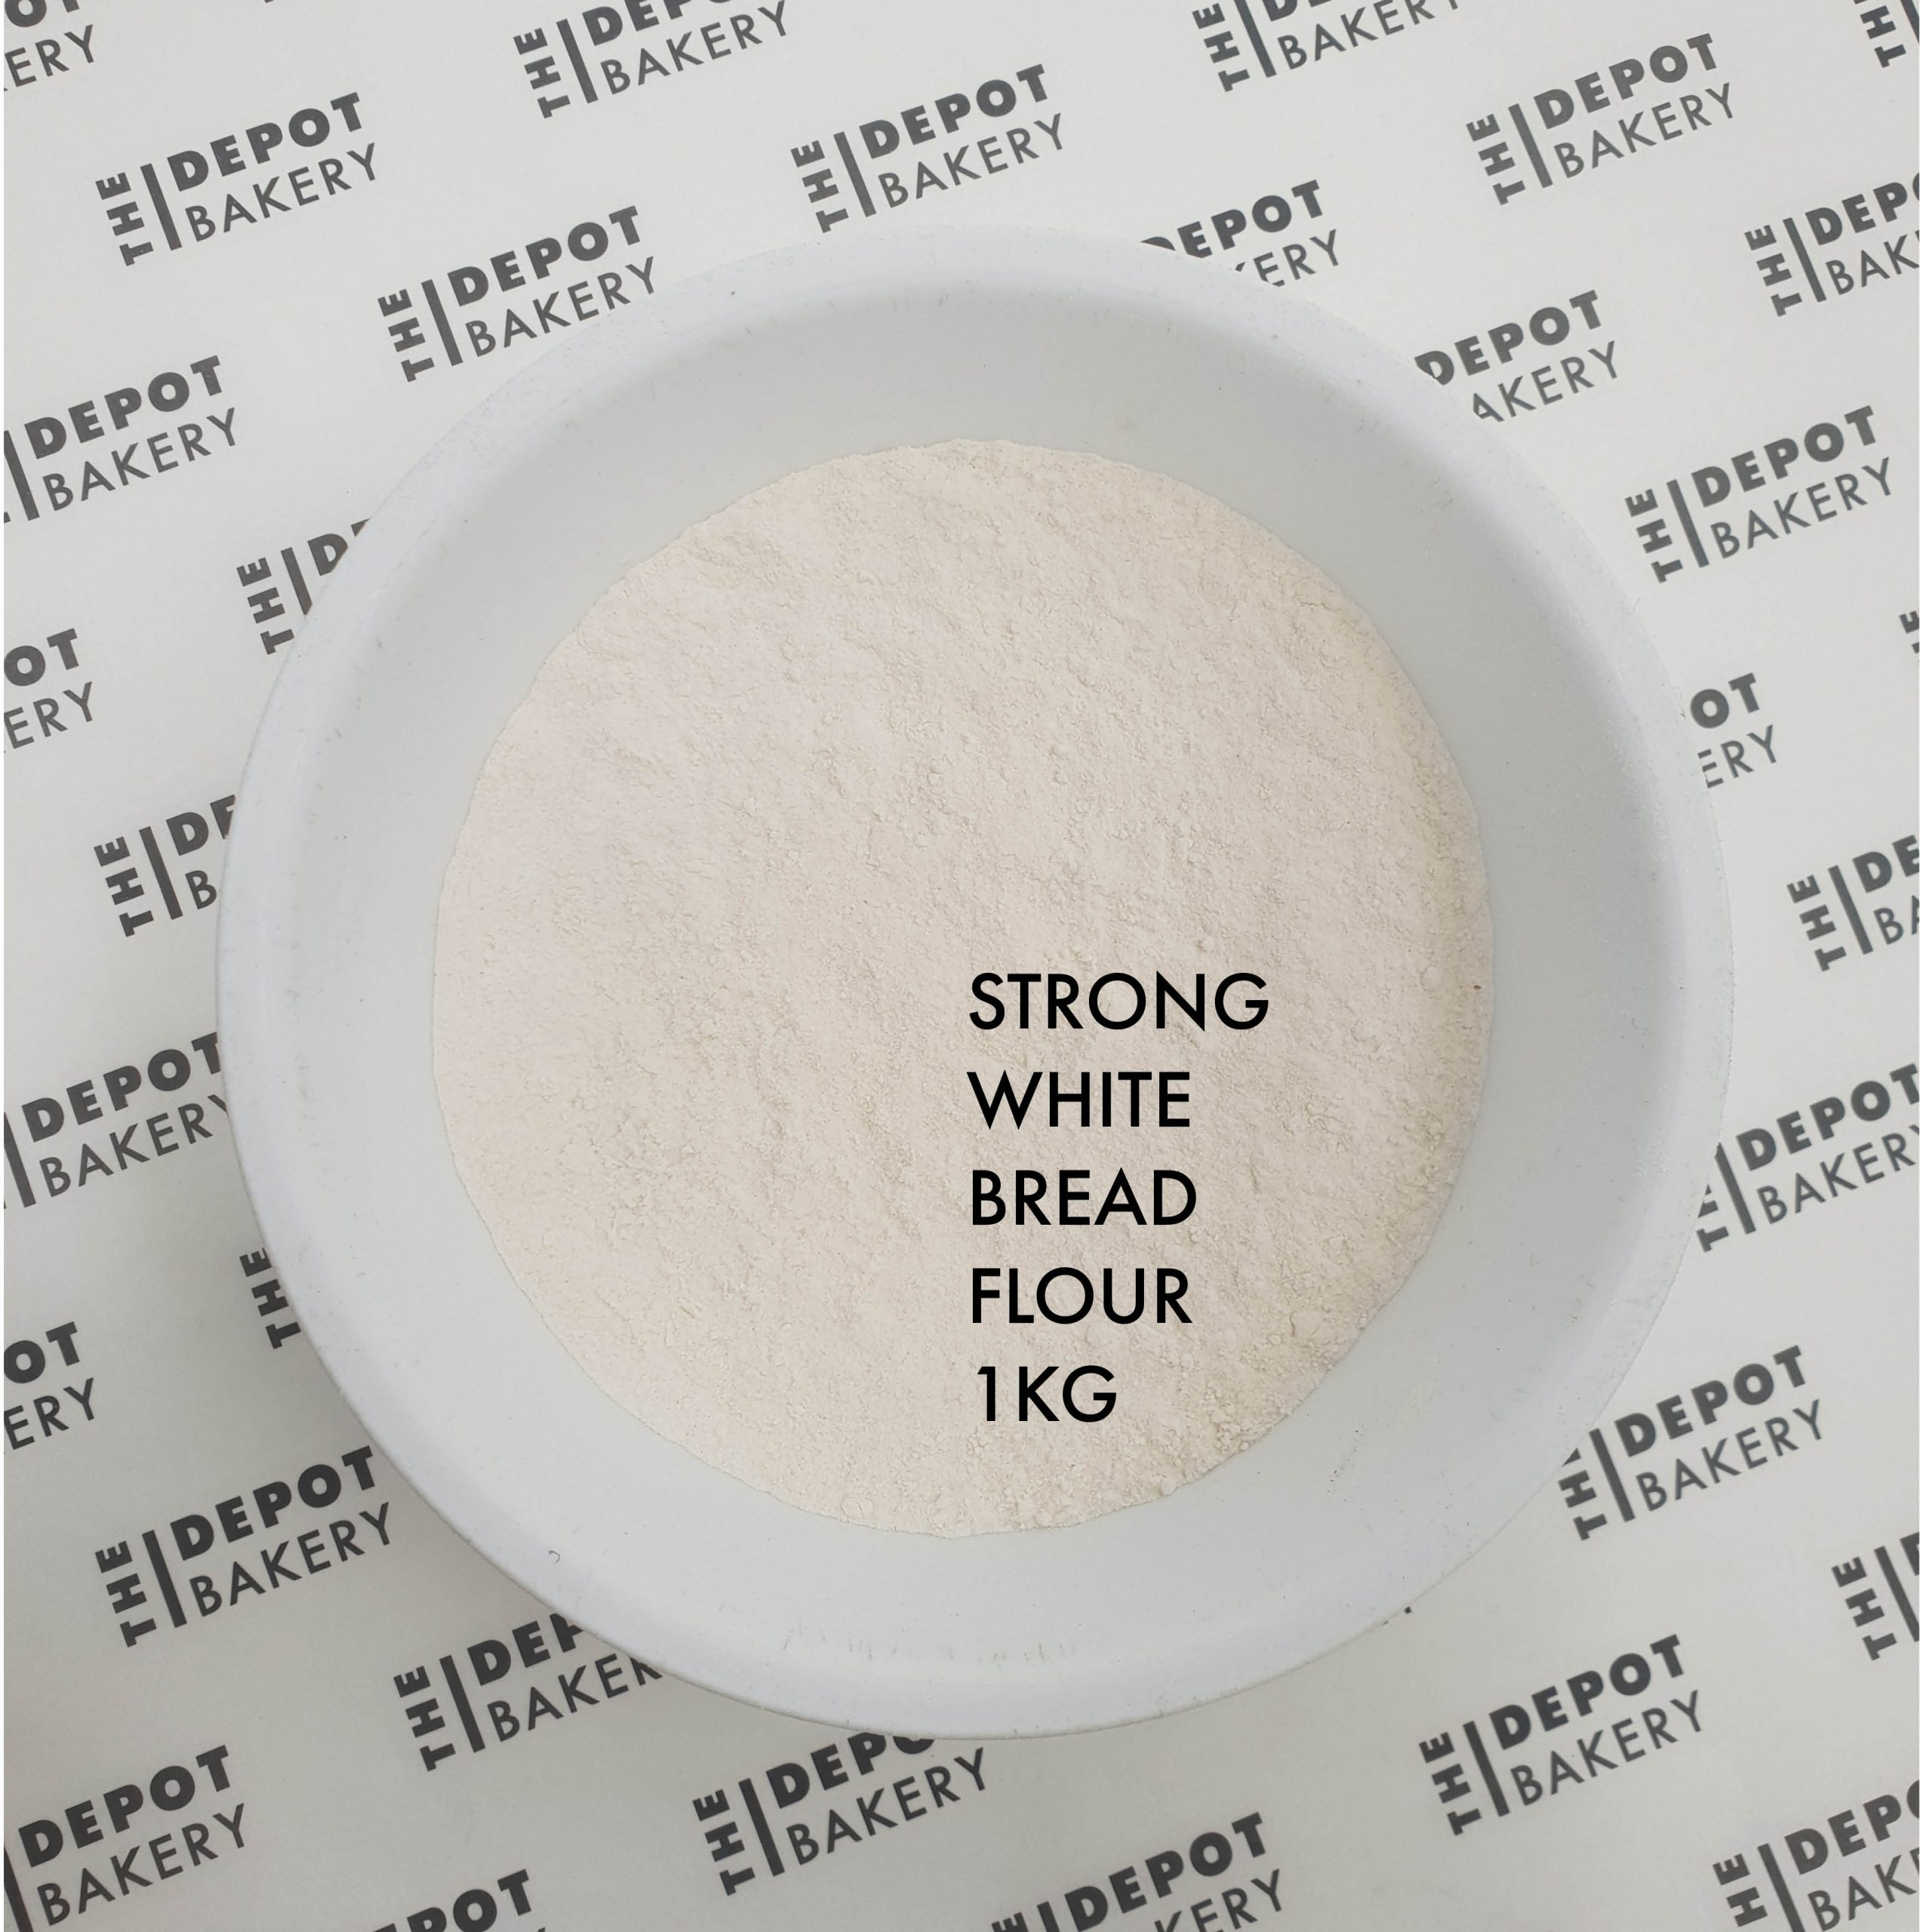 Strong White Bread Flour 1Kg